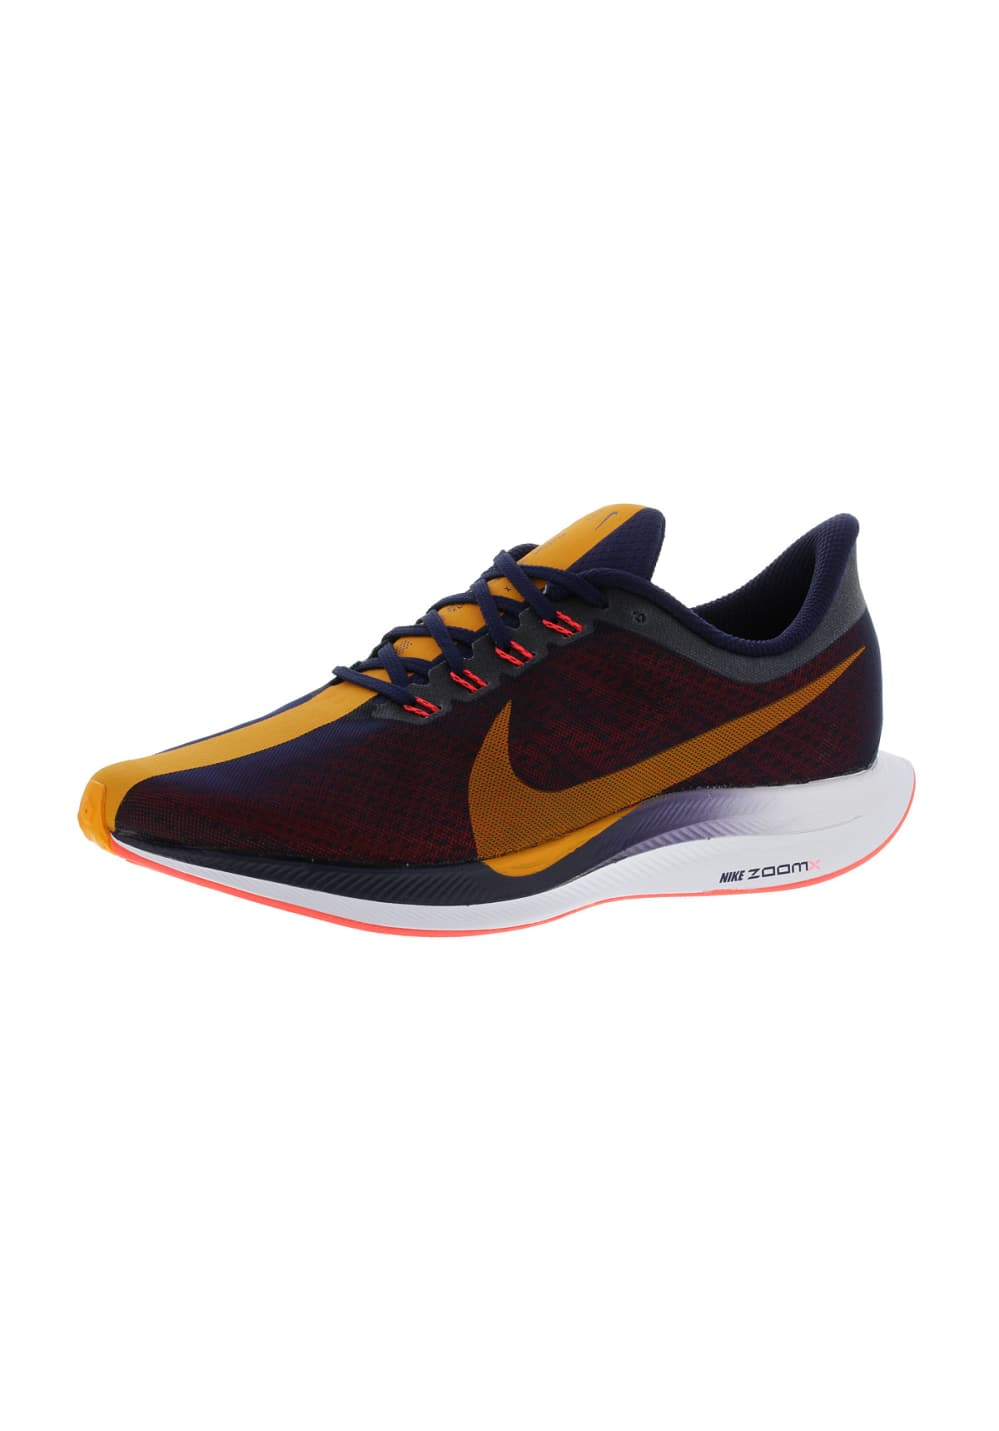 low cost 3ab66 7a54e Nike Zoom Pegasus Turbo - Running shoes for Women - Black